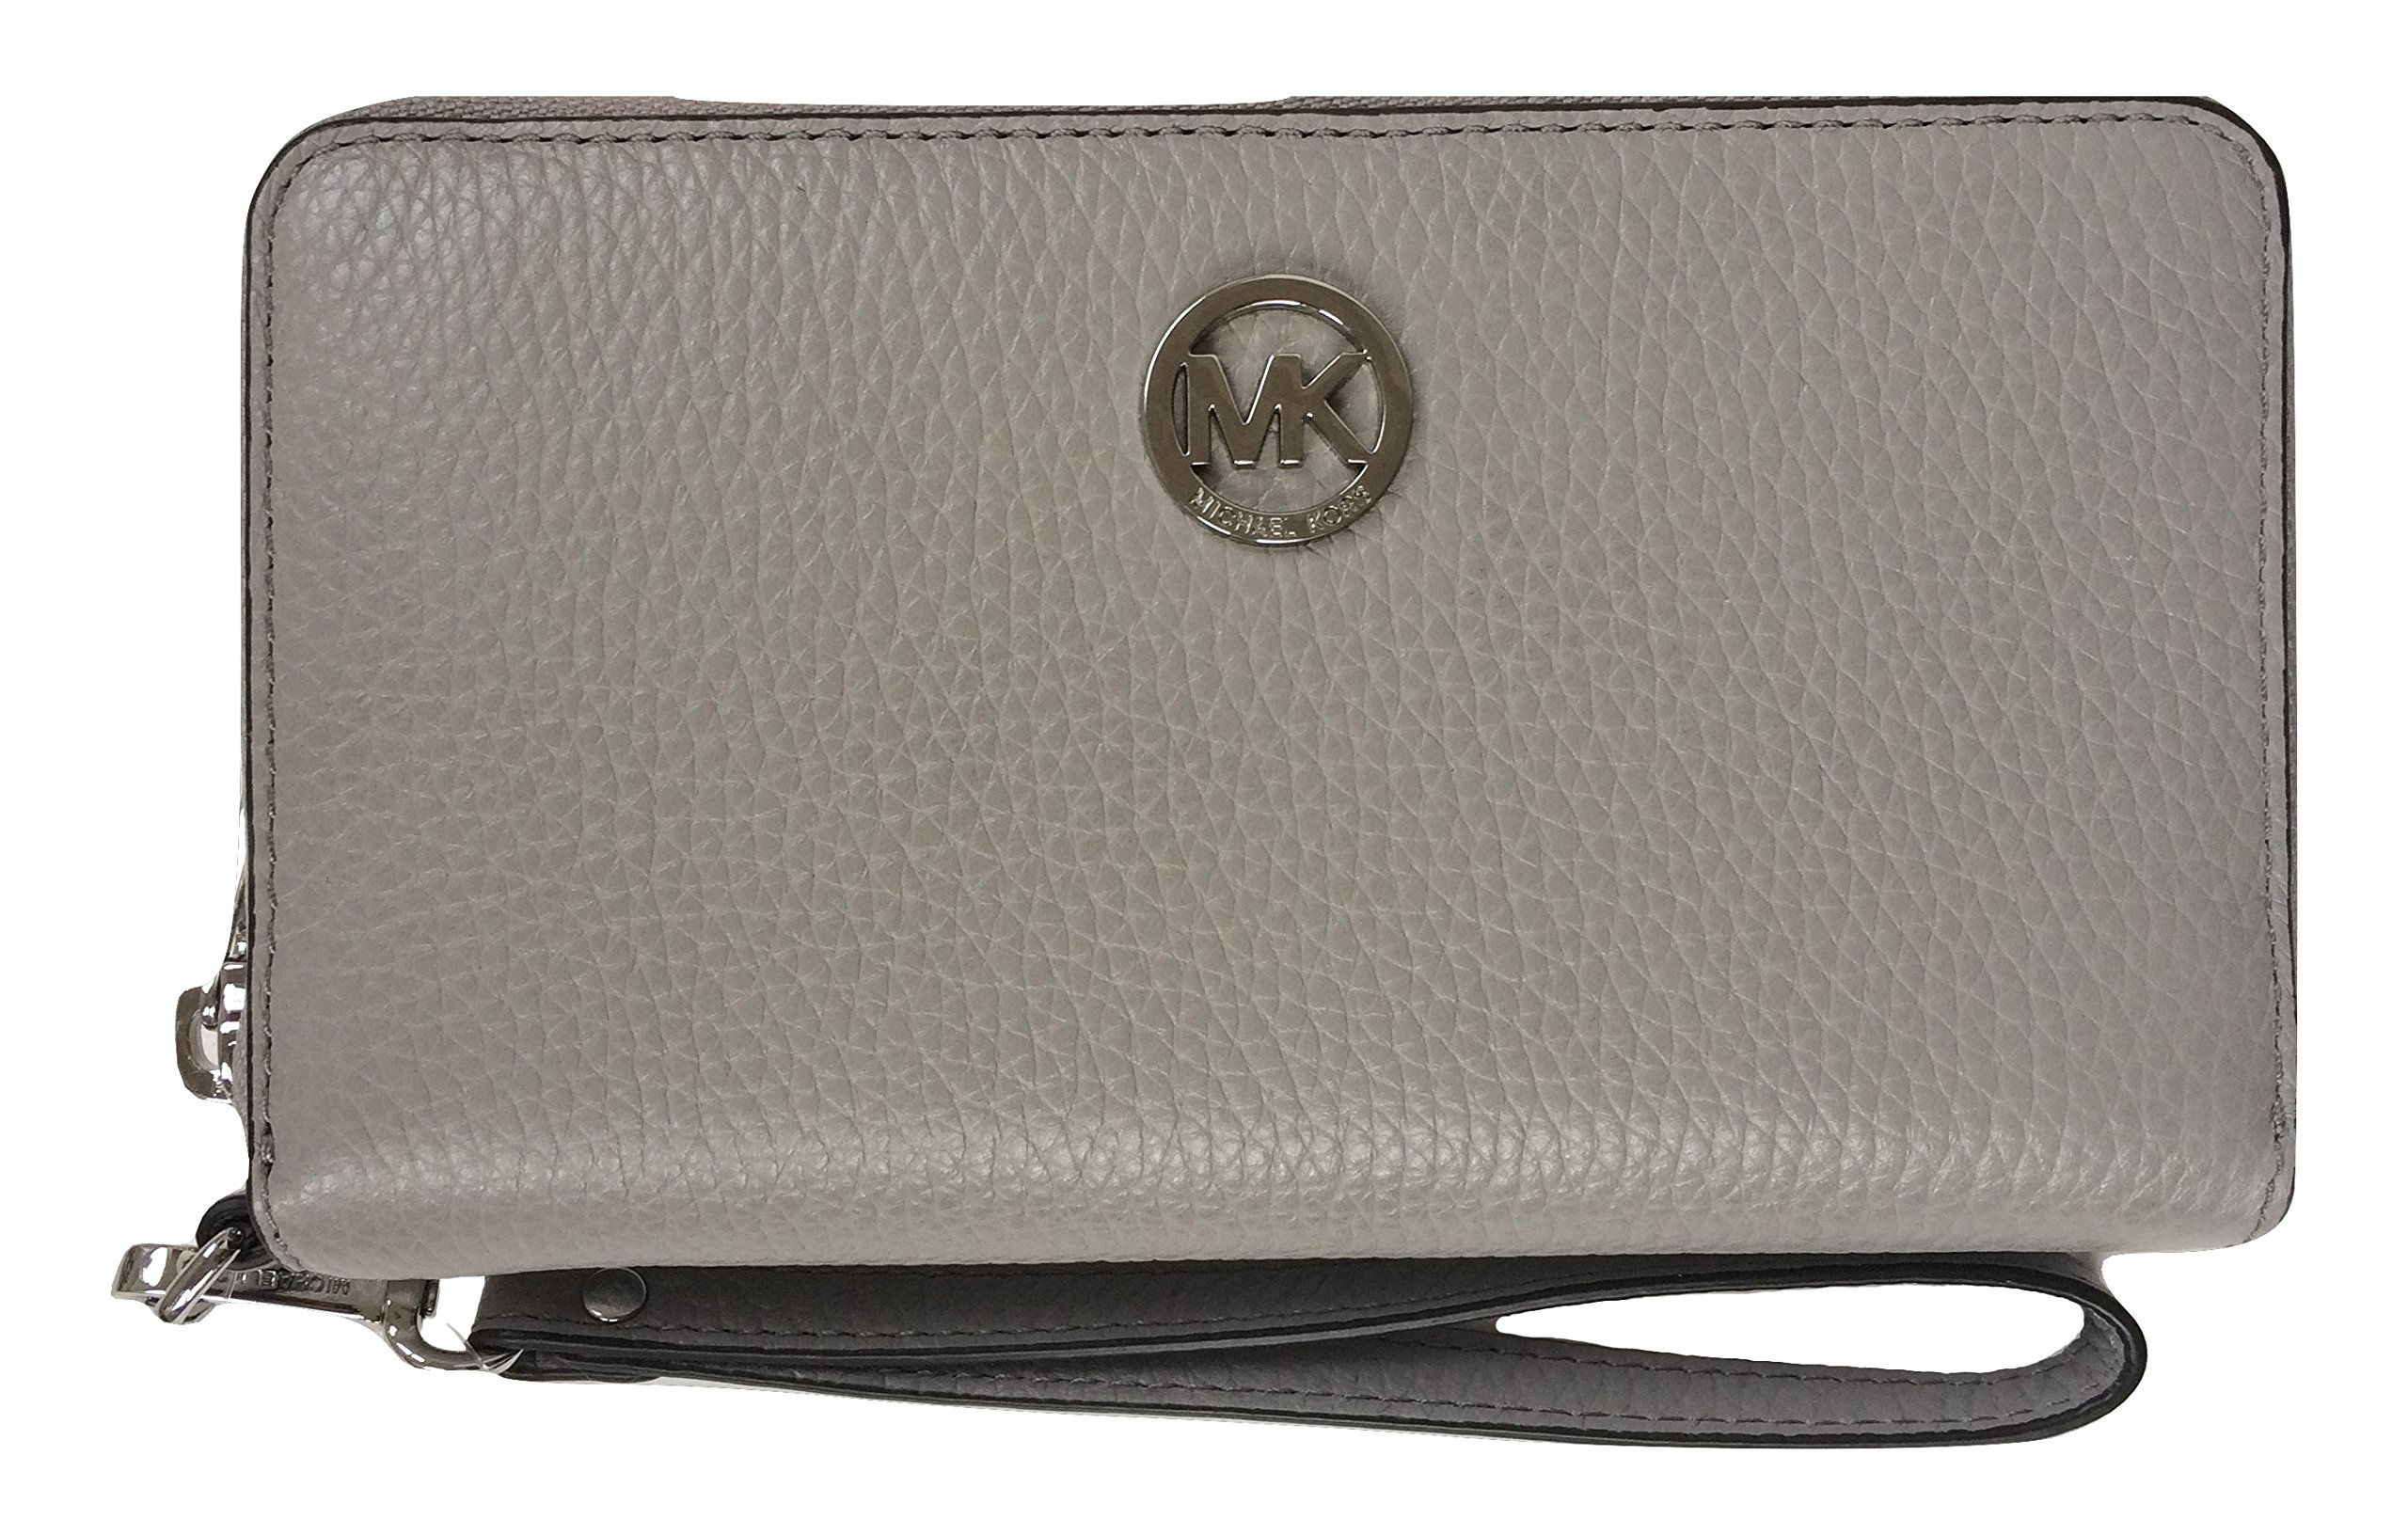 Michael Kors Fulton Large Flat Multifunction Leather Phone Case (Pearl Grey)